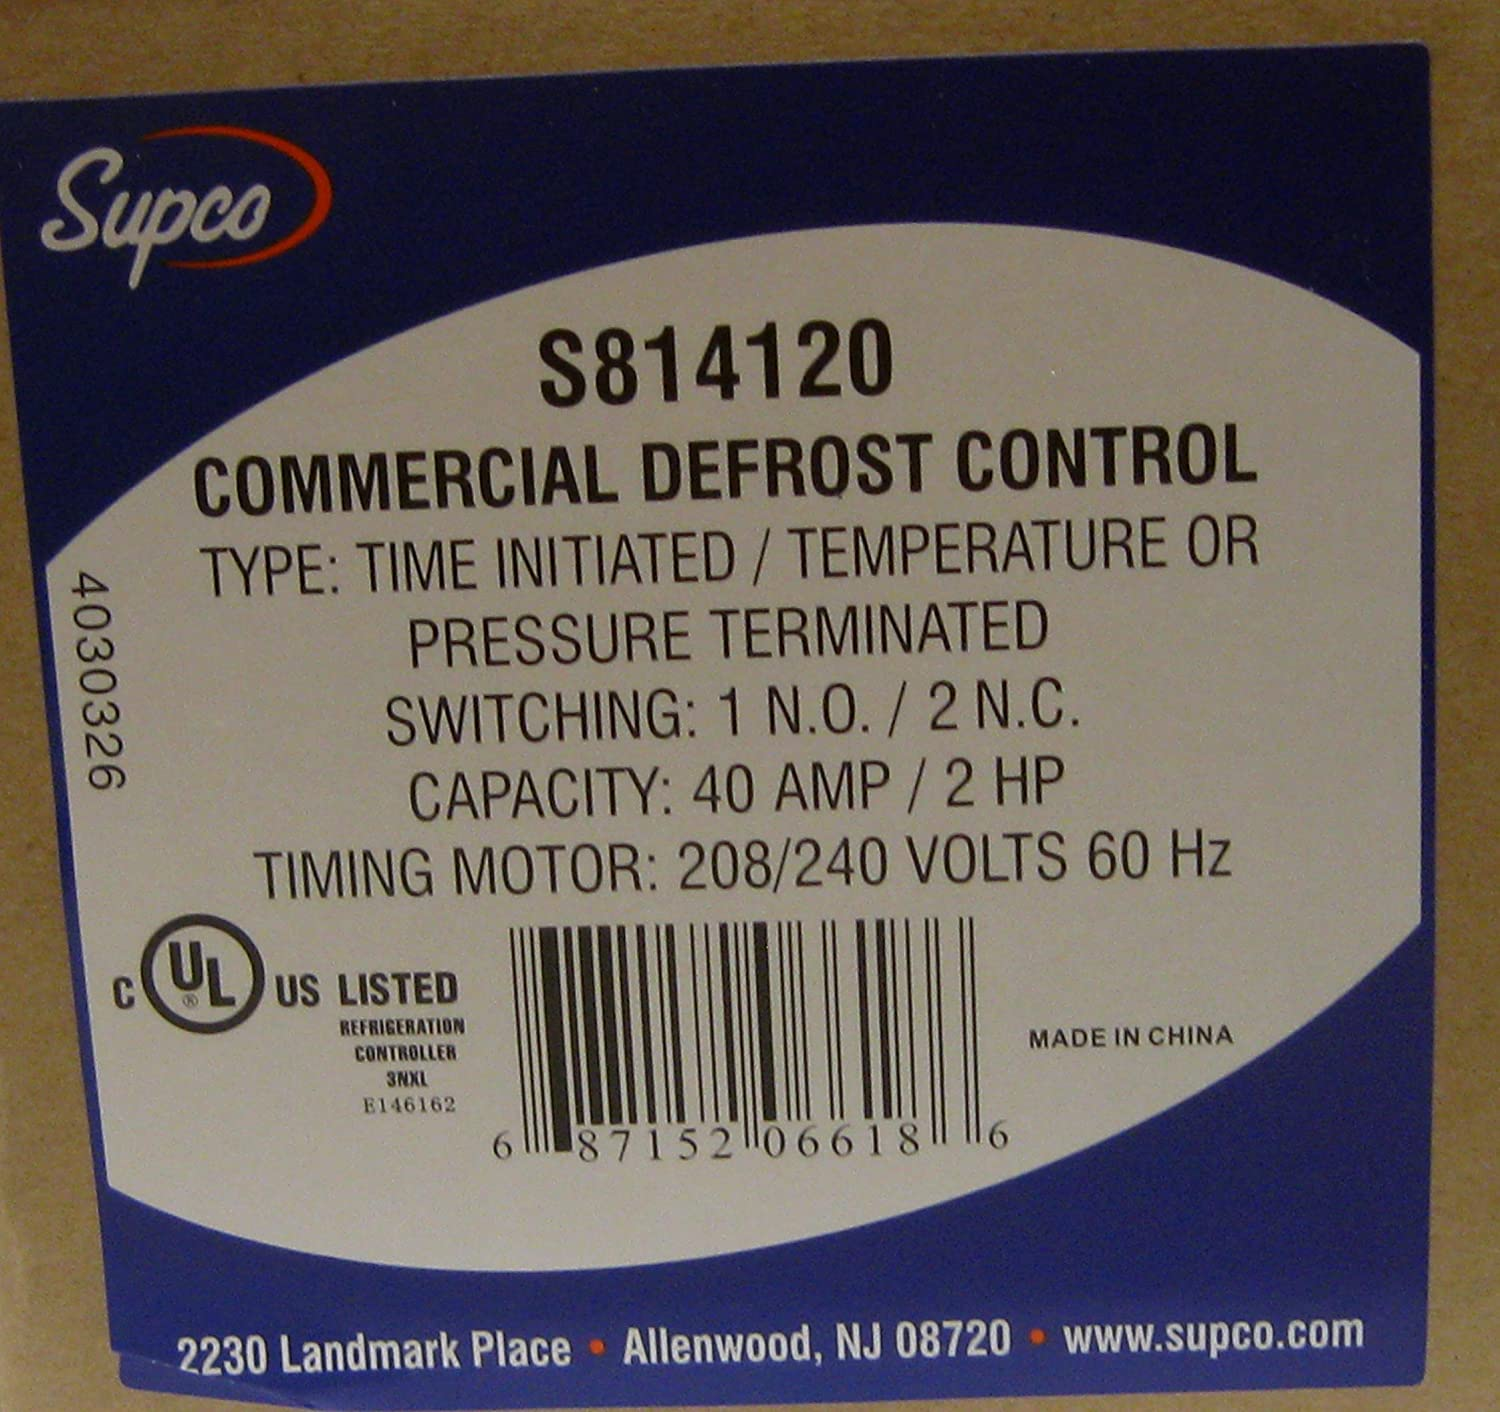 paragon defrost timer 8141 00 wiring paragon image paragon 8145 20 related keywords suggestions paragon 8145 20 on paragon defrost timer 8141 00 wiring